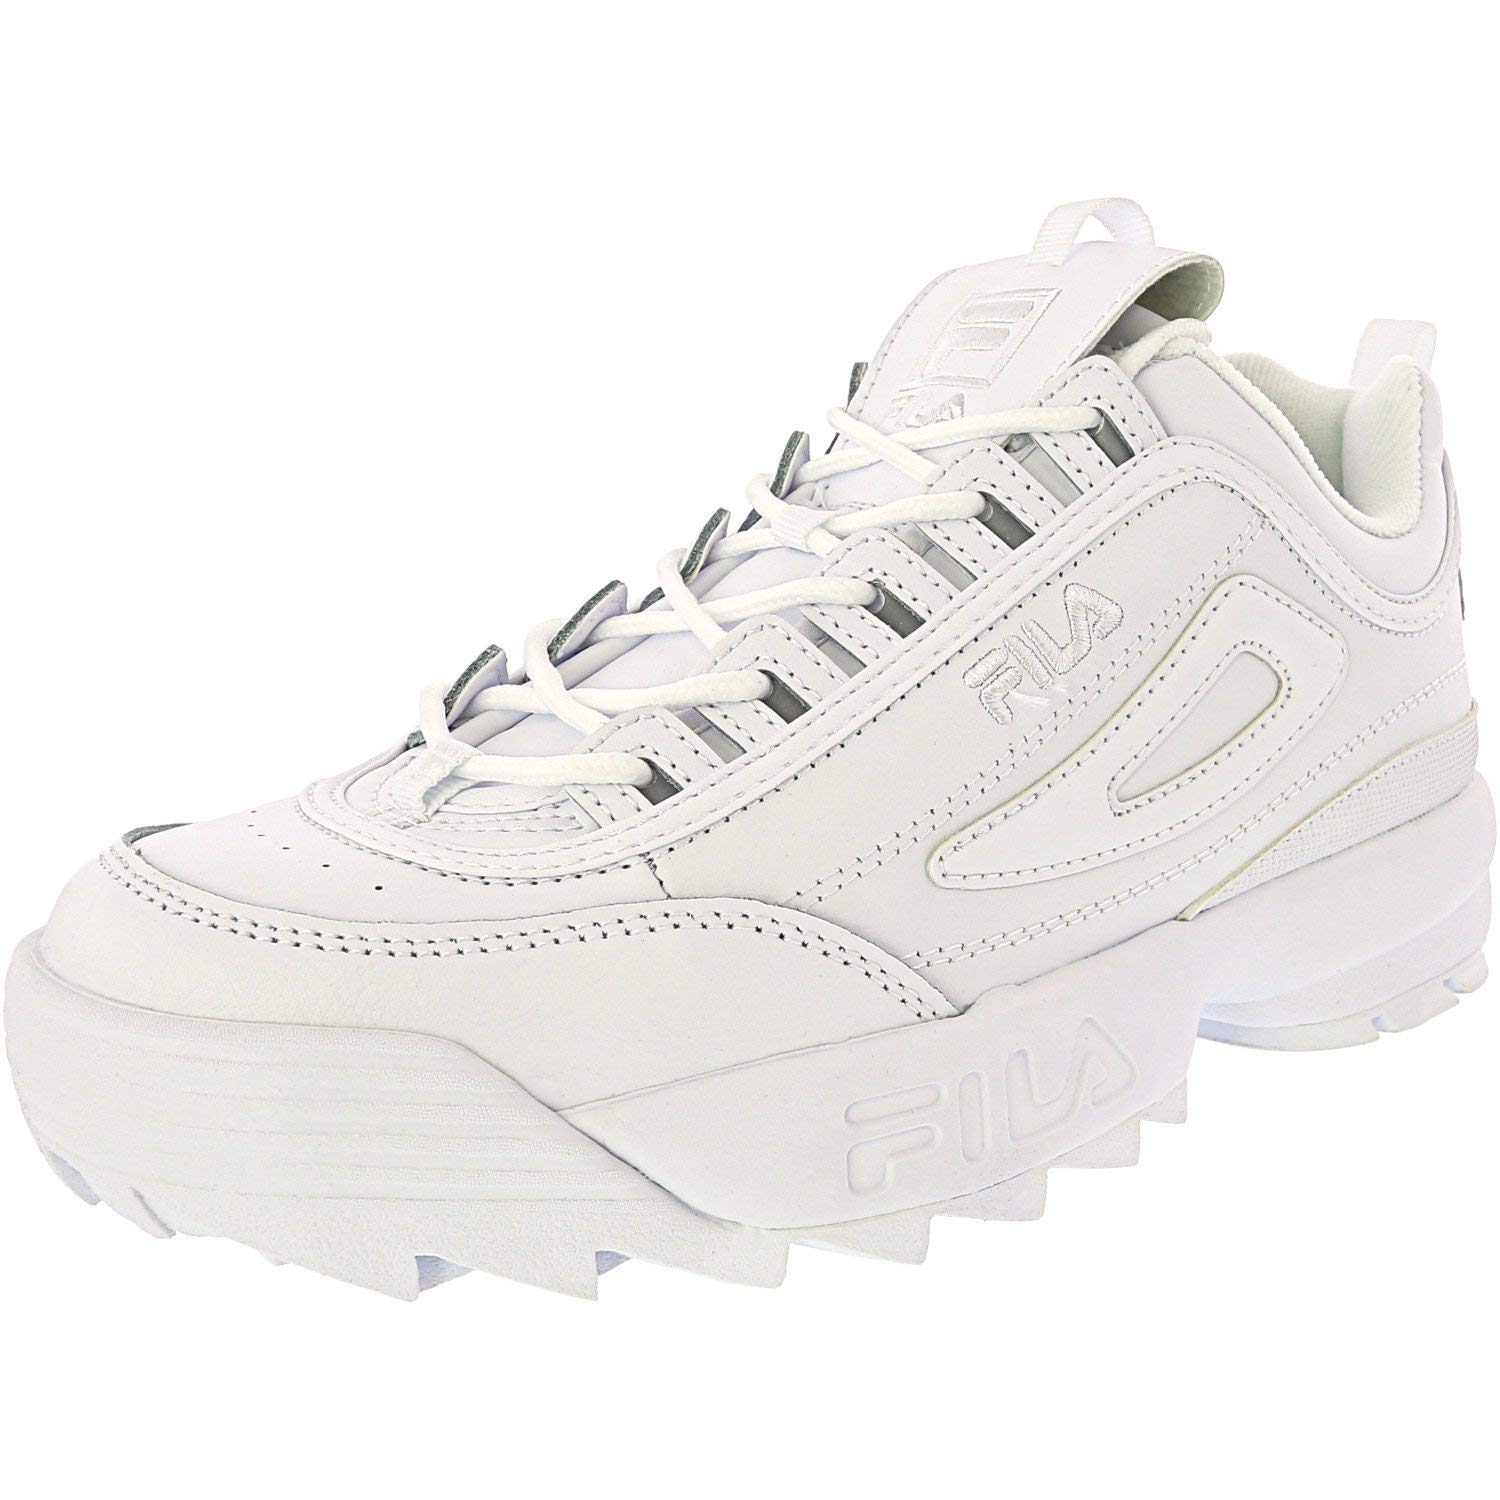 4863d2e8d4c Fila Women's Disruptor Low Wmn 1010302-12v Top Sneakers